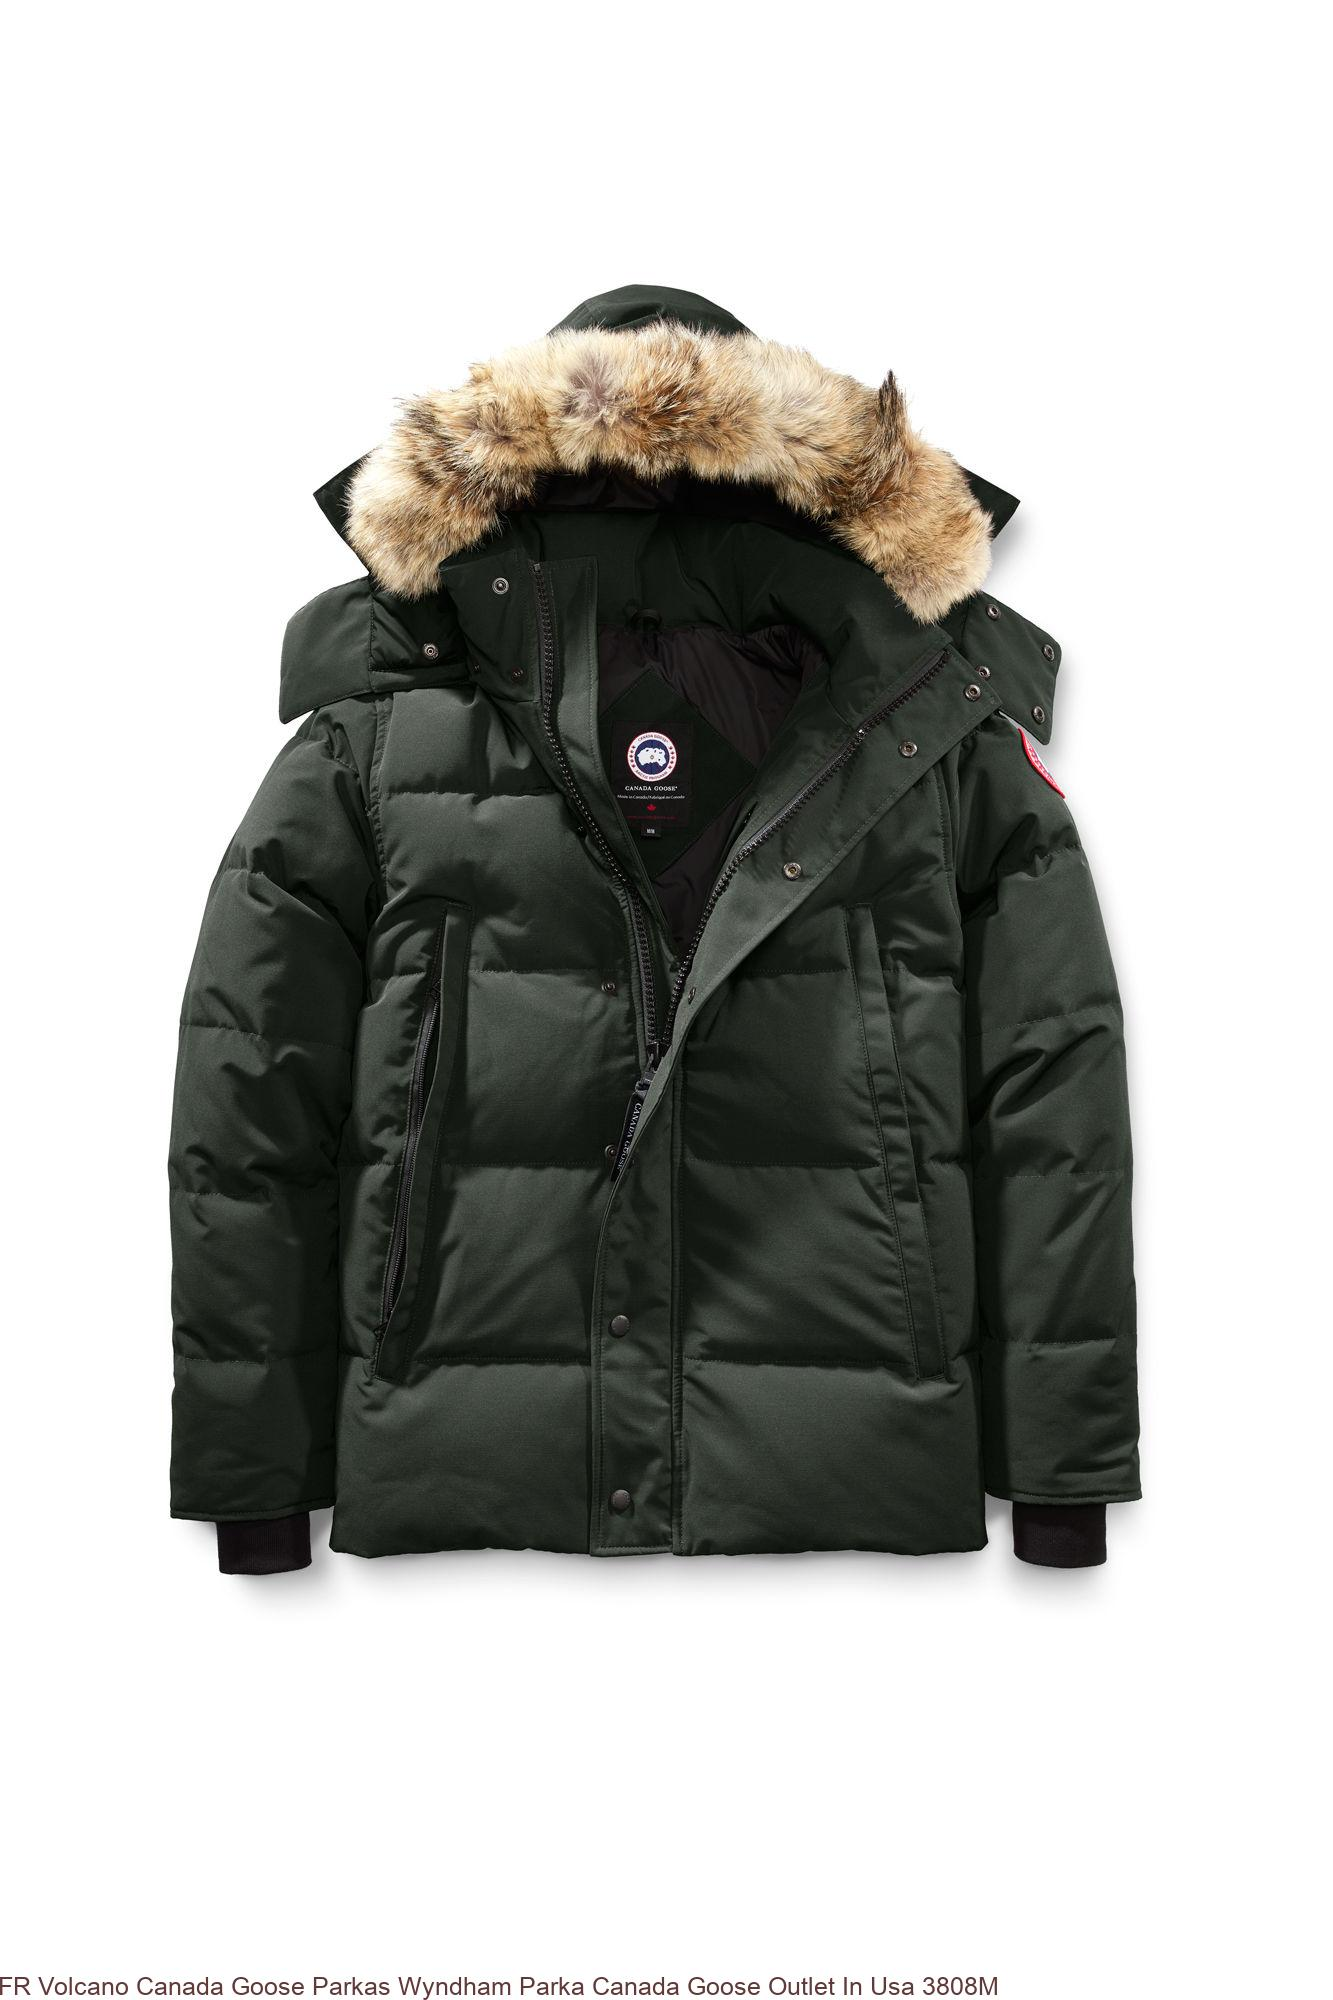 2019 Reviews & Ratings on Canada Goose Brand Products